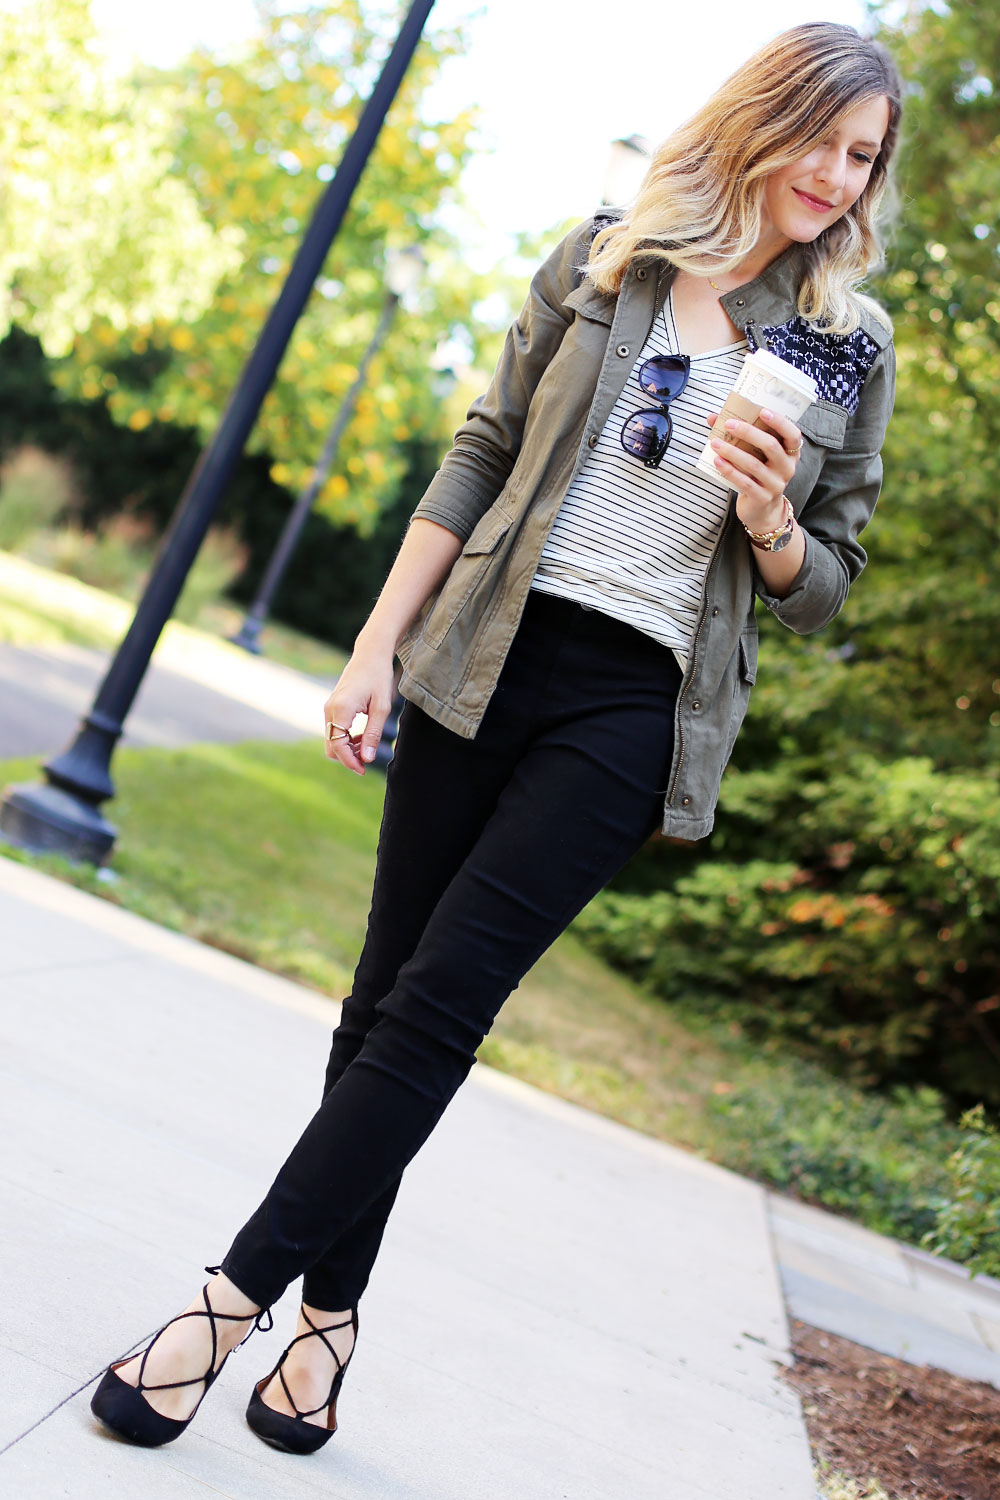 Pair a cargo jacket with a striped tee and lace-up flats for a chic back-to-school look.